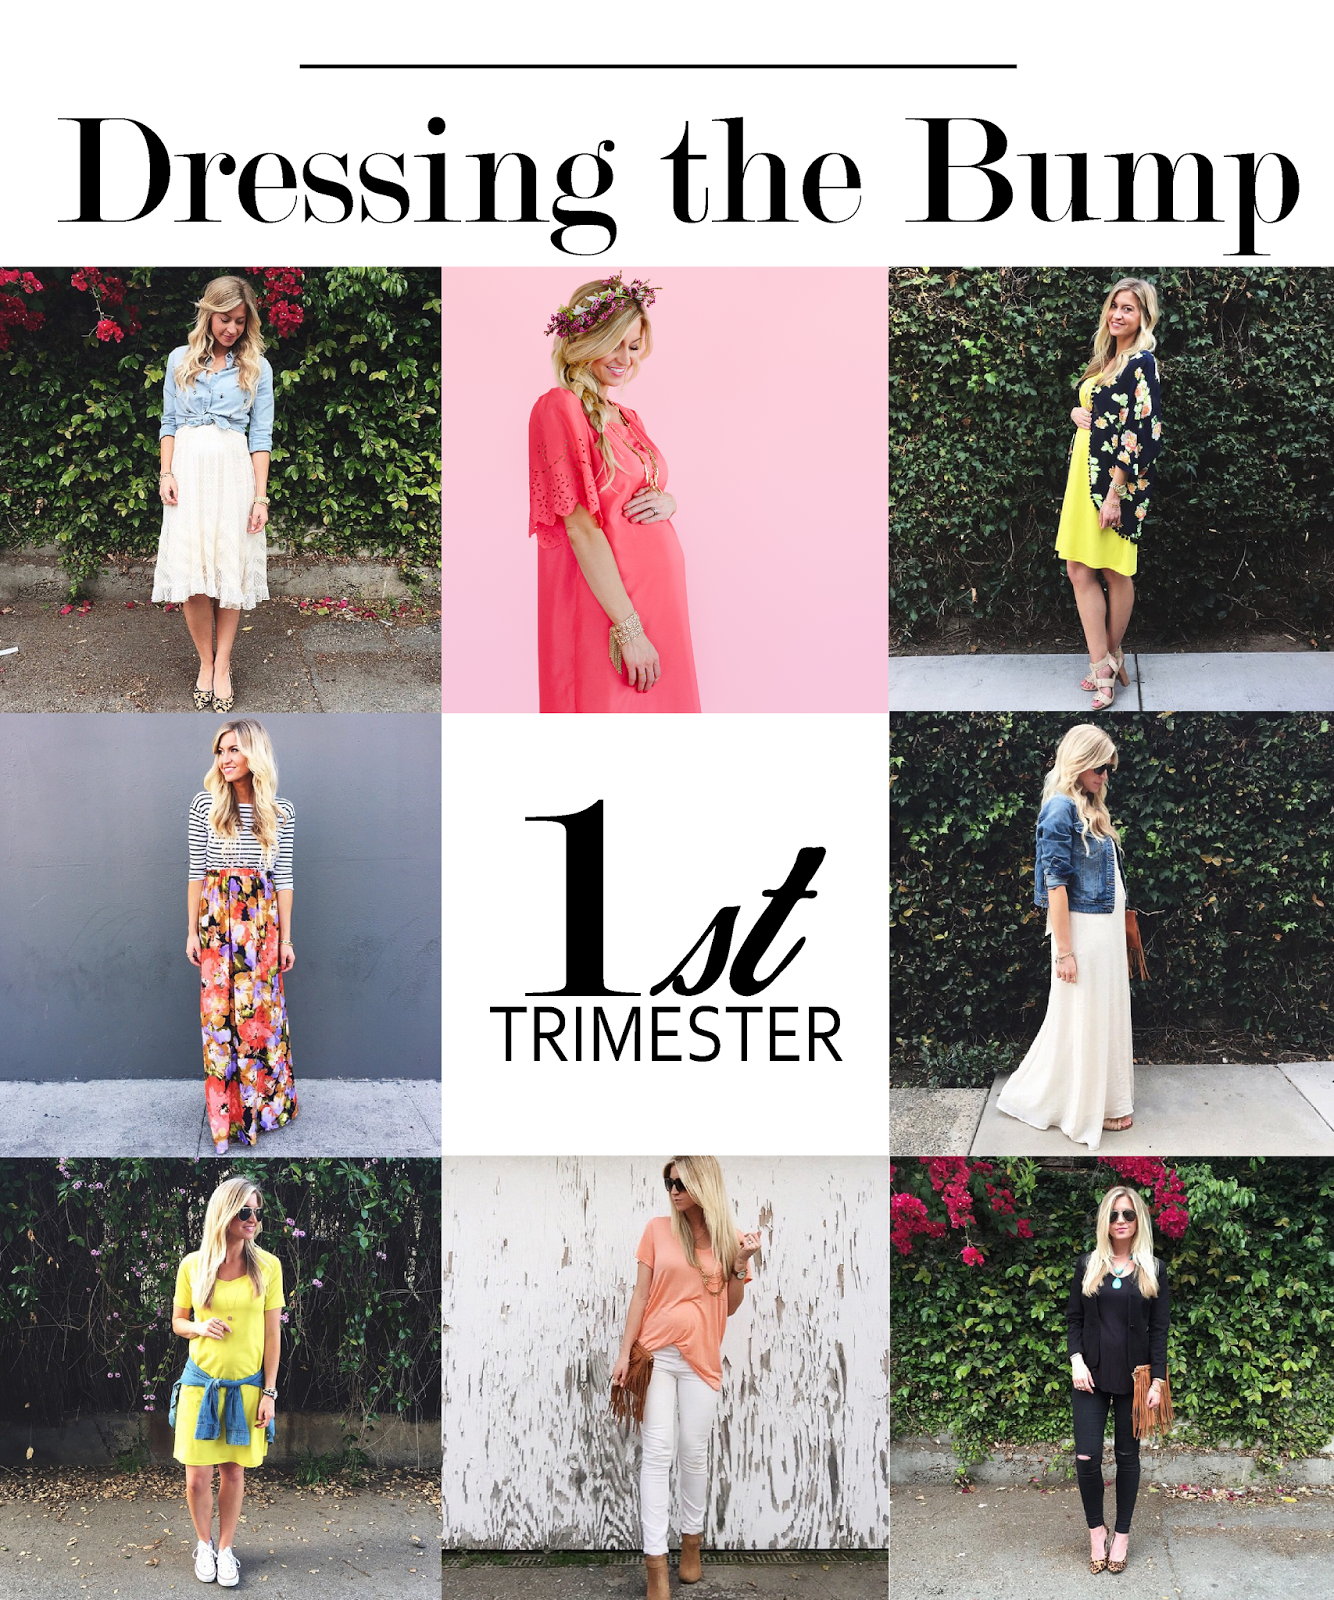 bc1779f791895 Dressing the Bump Series: What to wear during the first trimester of  pregnancy.